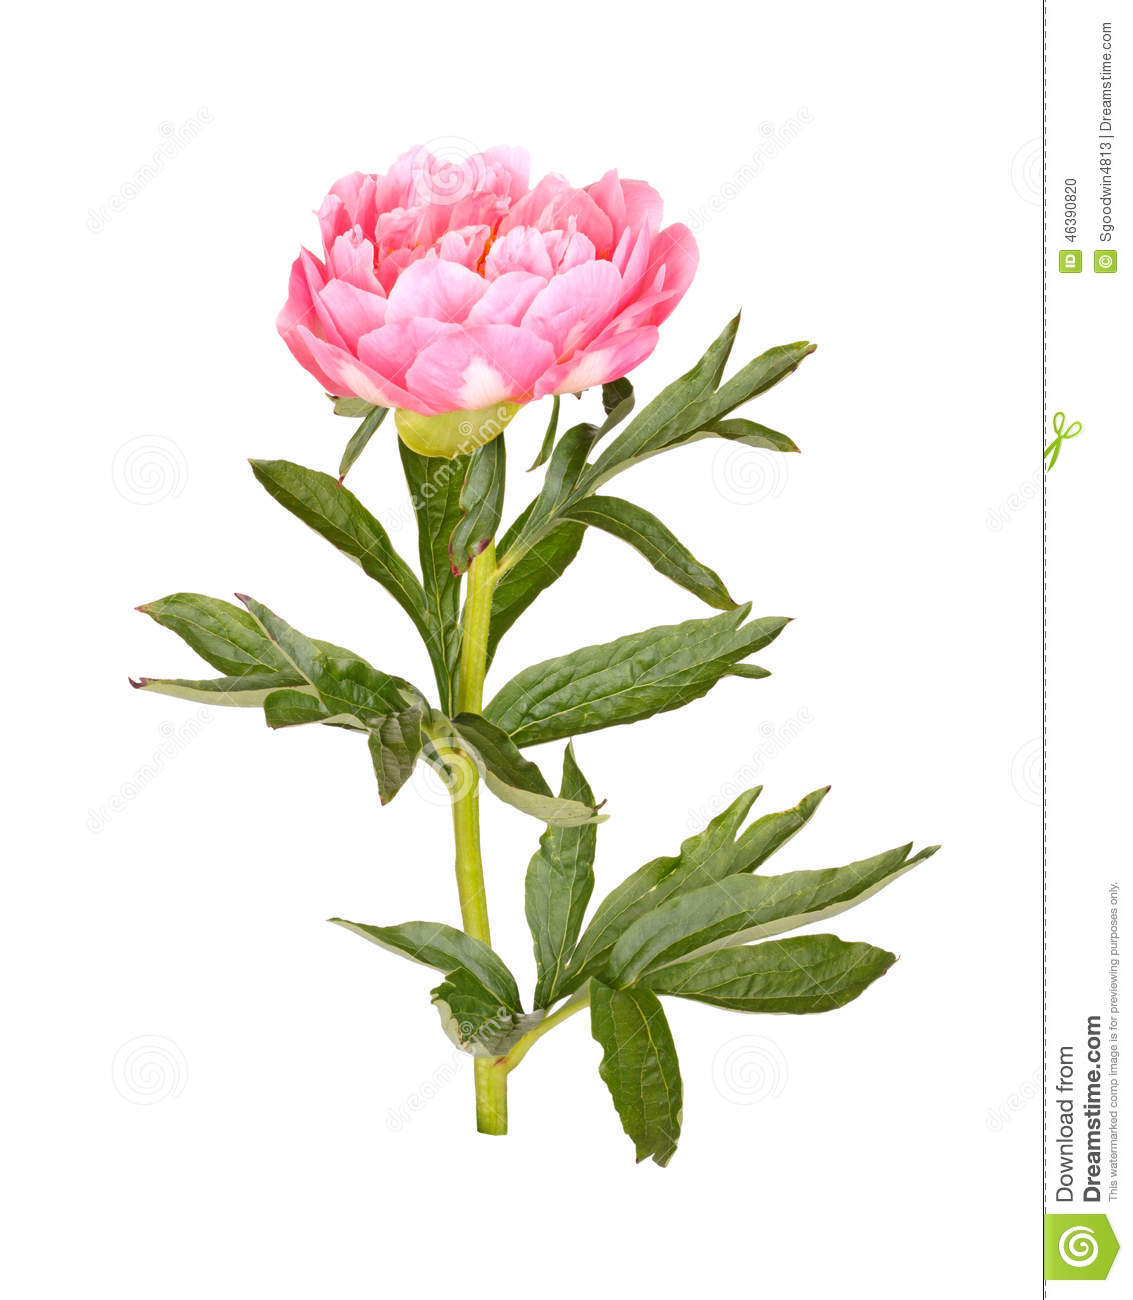 Pink Peony Flower, Stem And Leaves On White Stock Photo ...